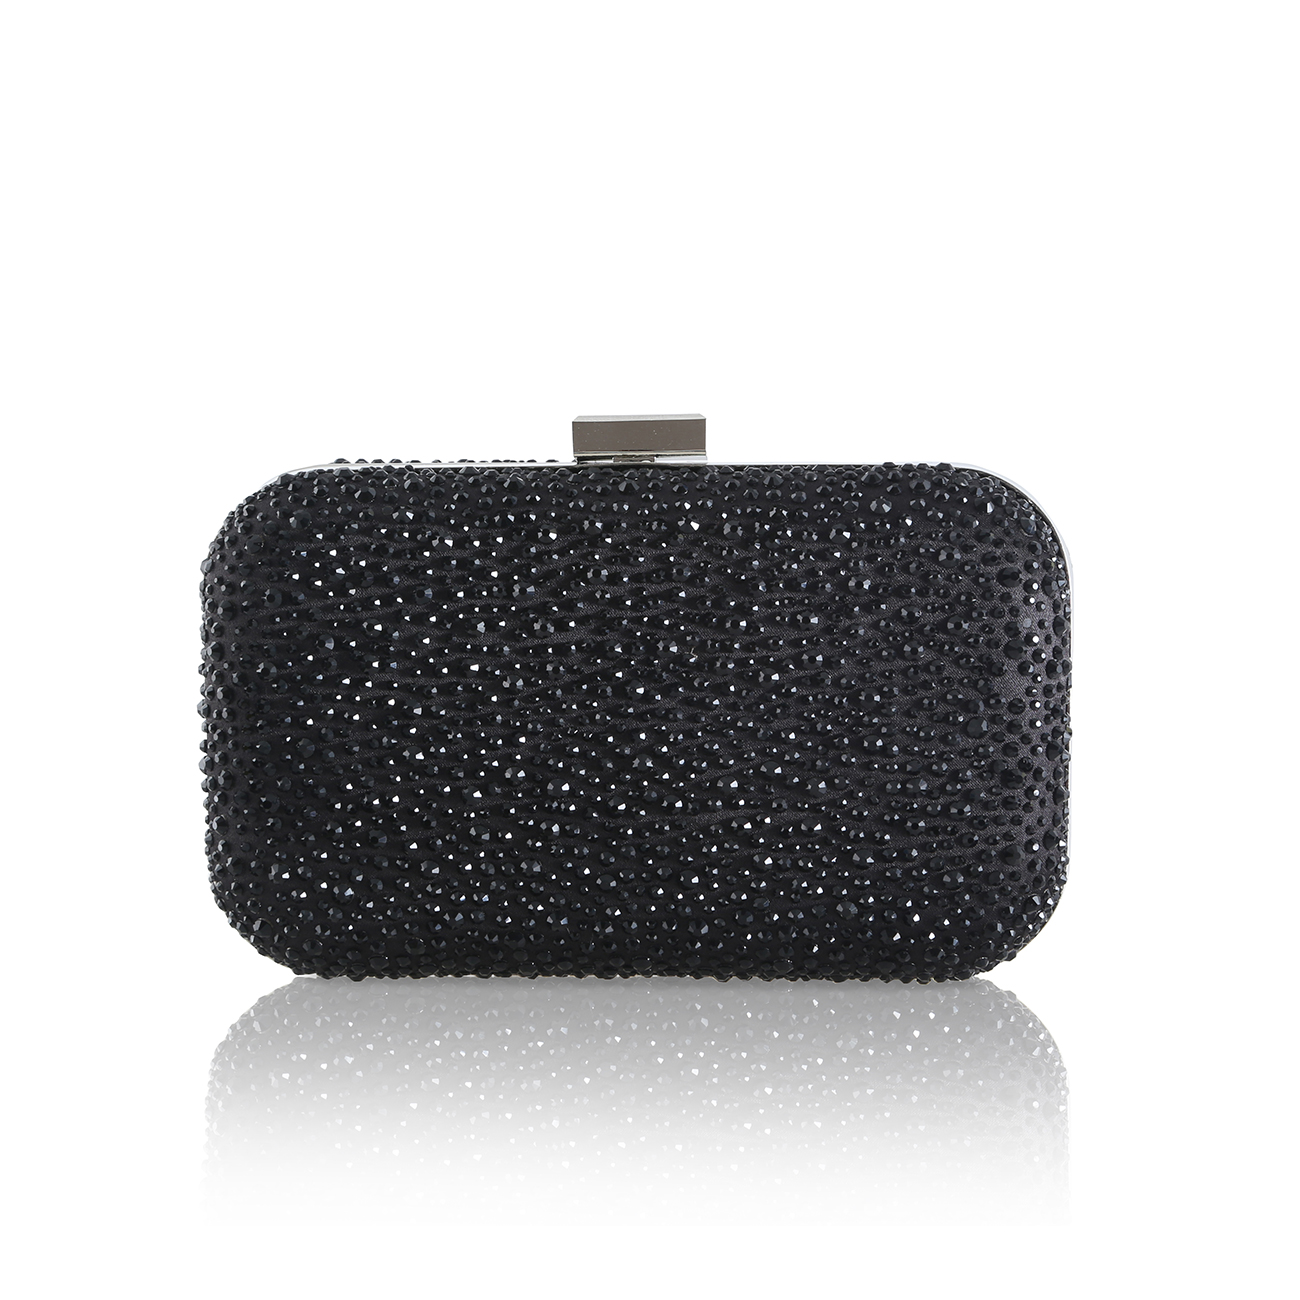 sammy crystal encrusted black clutch bag